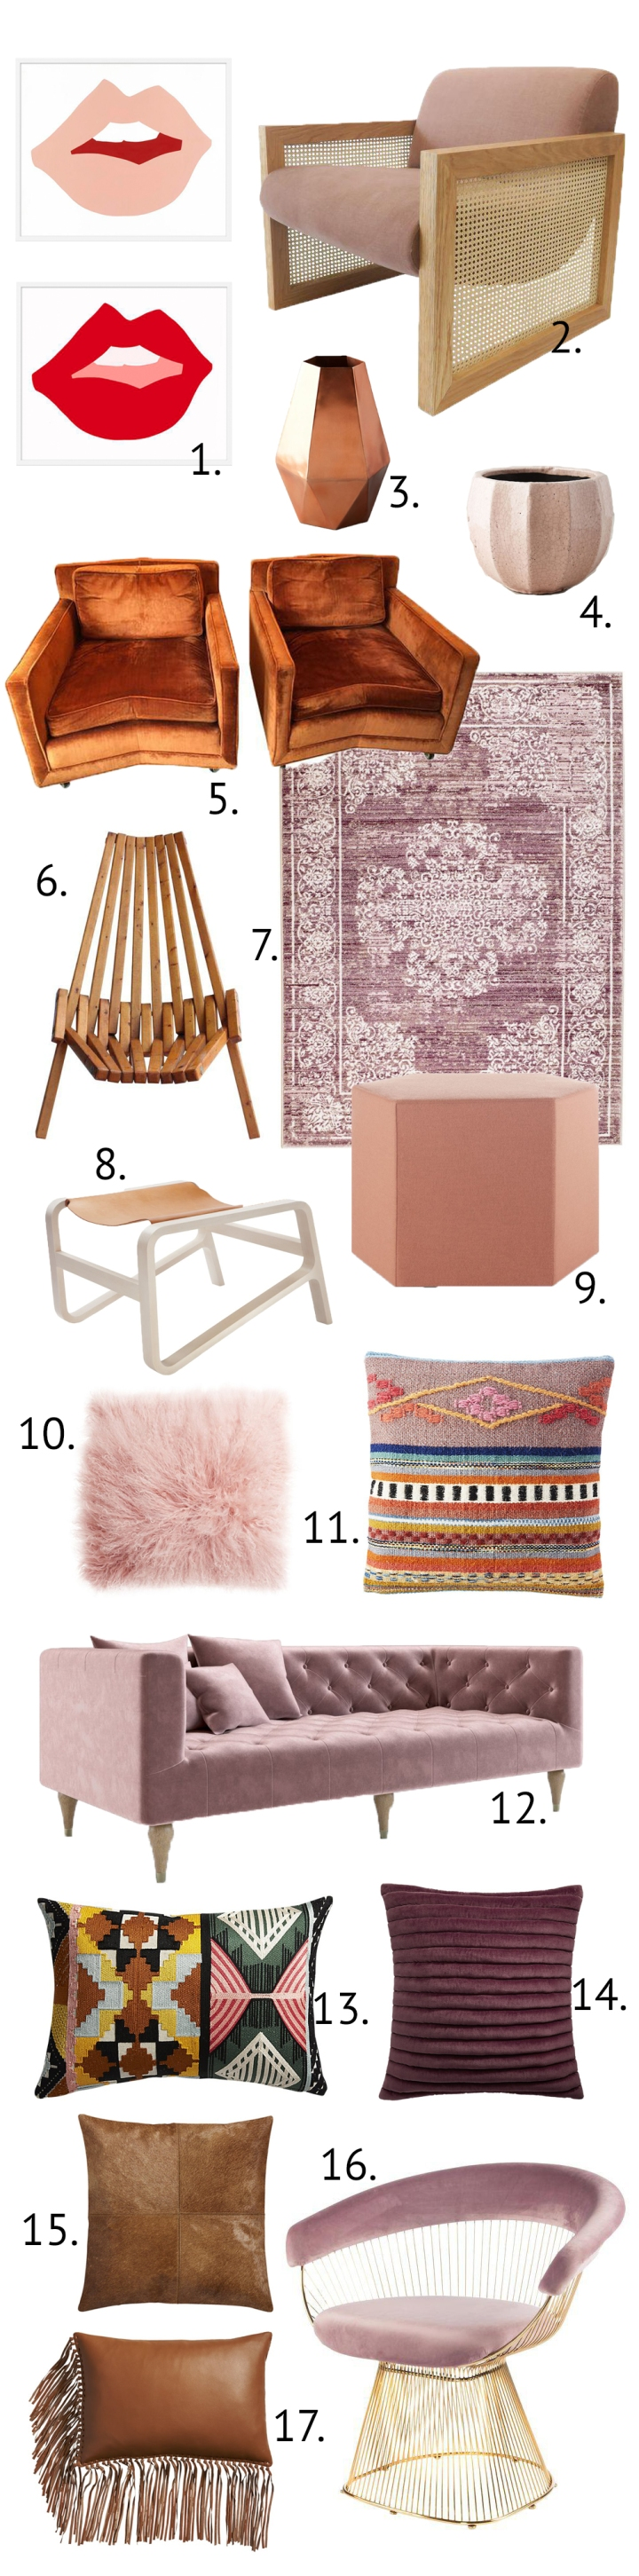 Shop the Look! Blush and tan might just be the next big interior design trend! Pink and leather. blush and tan living rooms